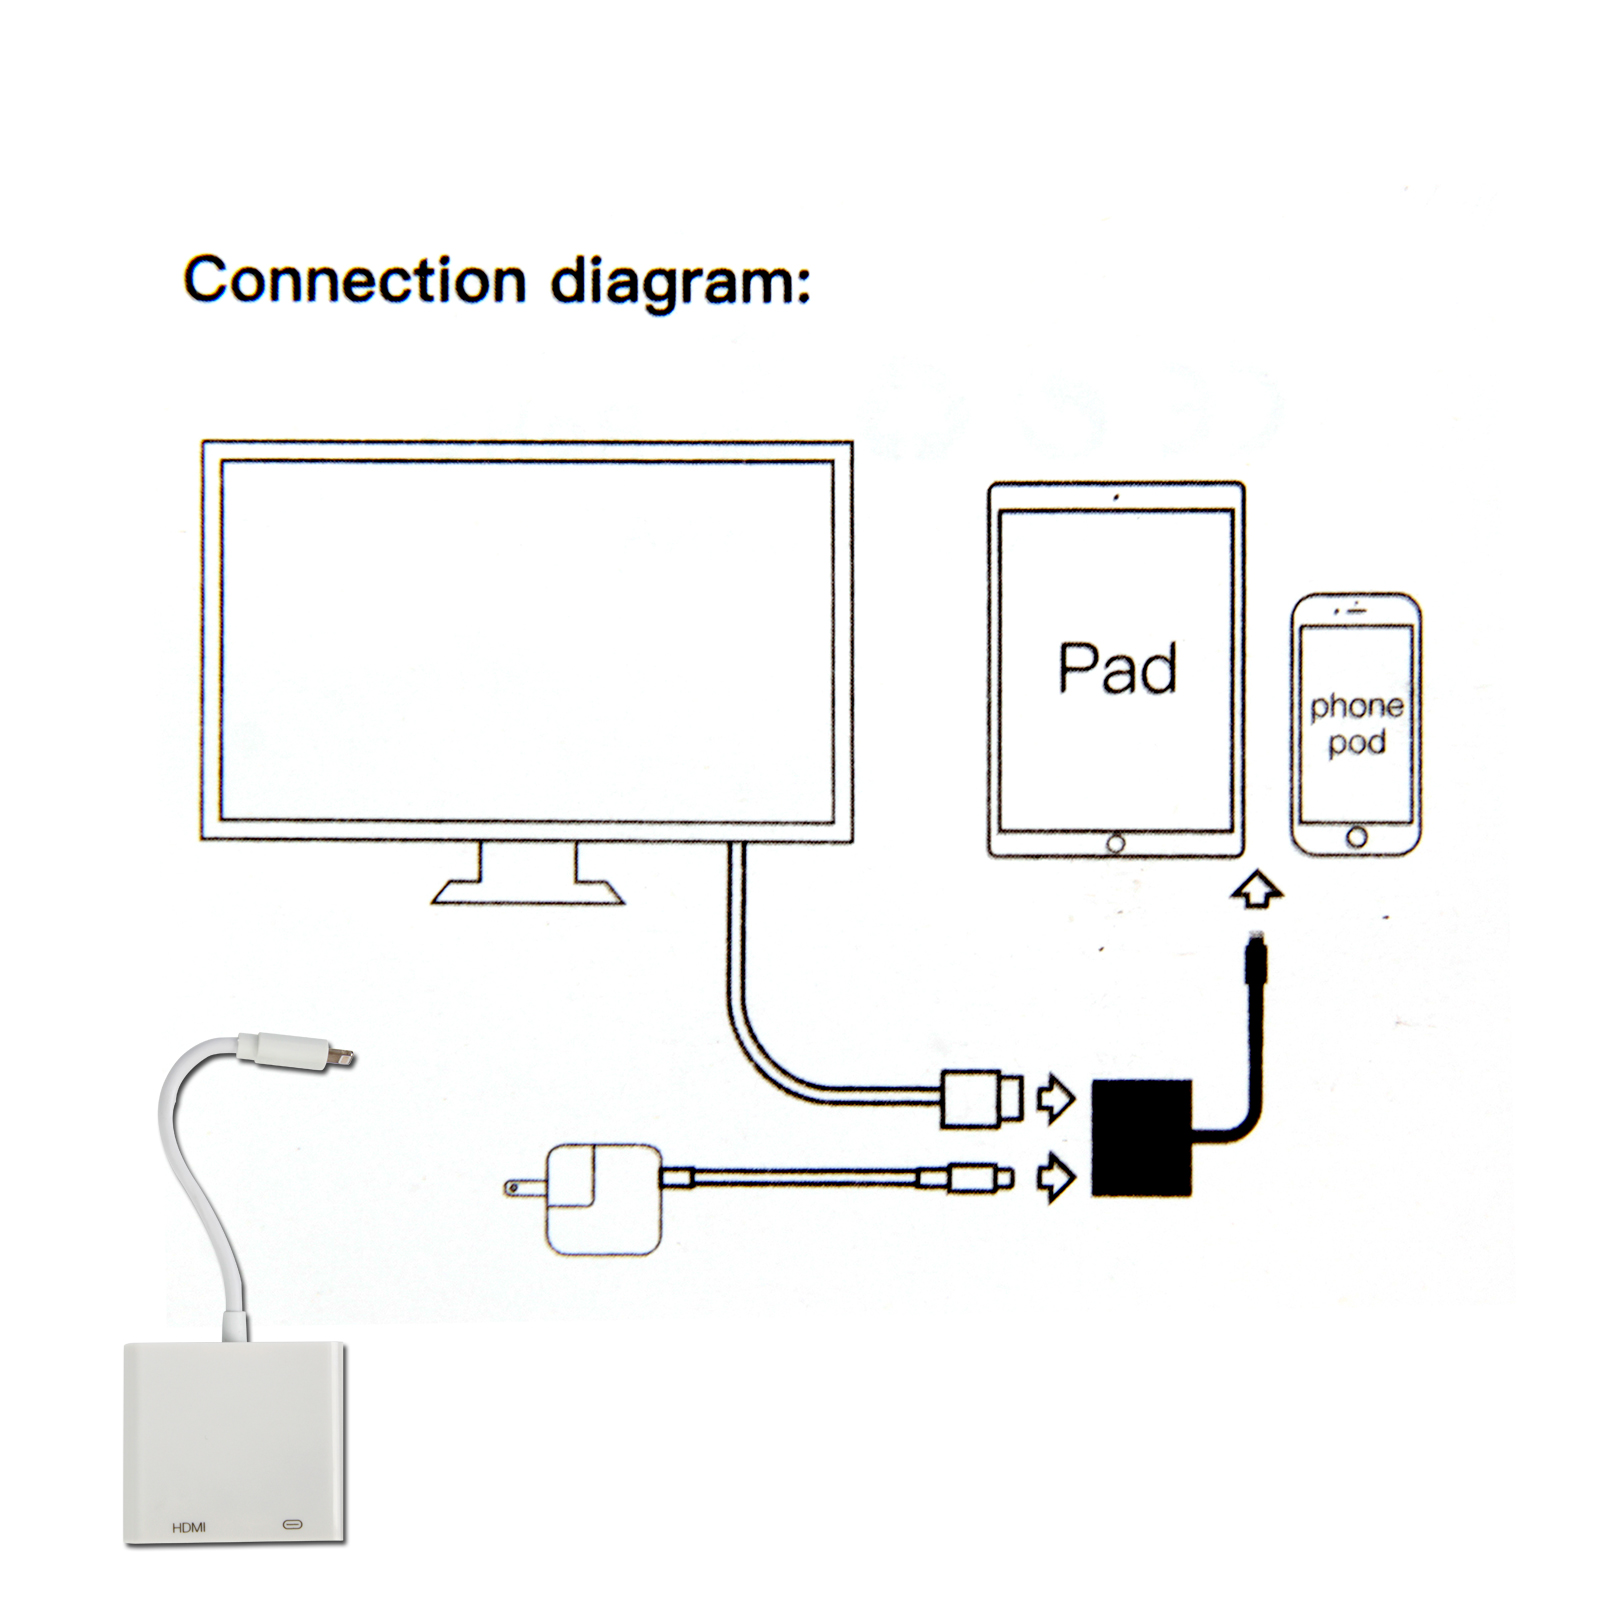 Lightning Digital Av Adapter To Hdmi Cable For Apple Wiring Diagram High Quality Use The With Your Iphone Ipad Or Ipod Connector 2the Supports